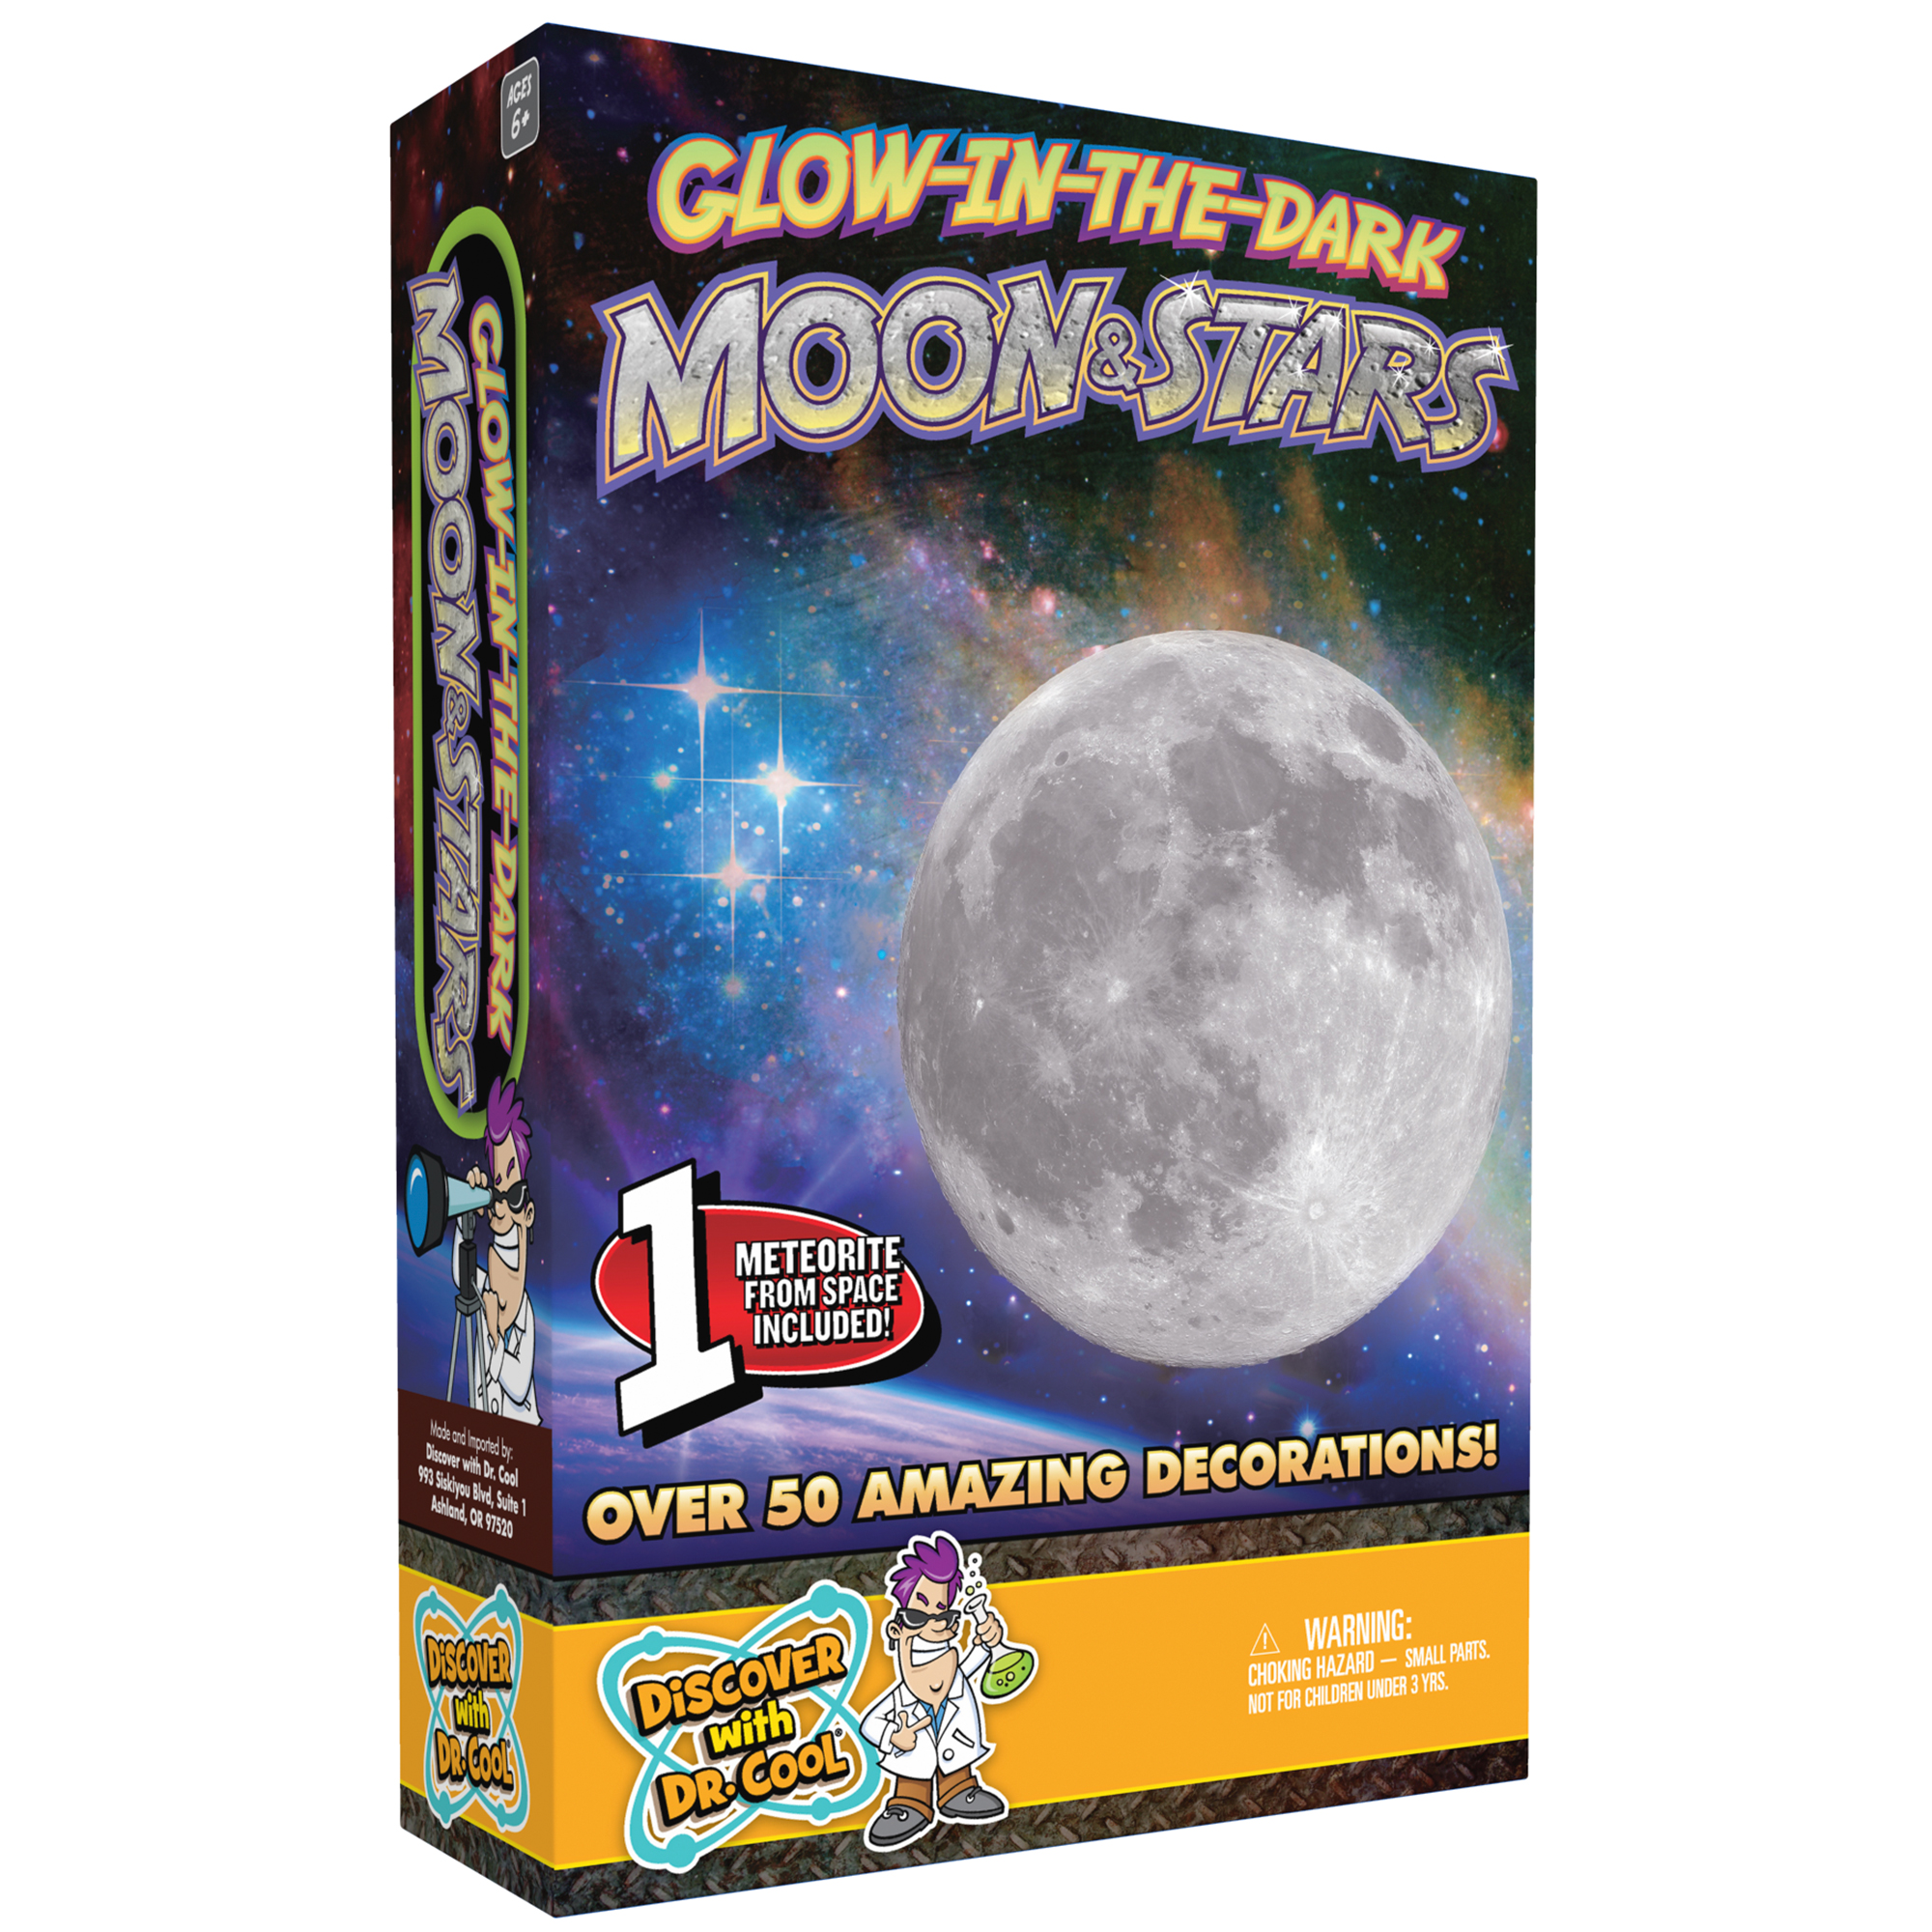 GLOWMOON_BOX